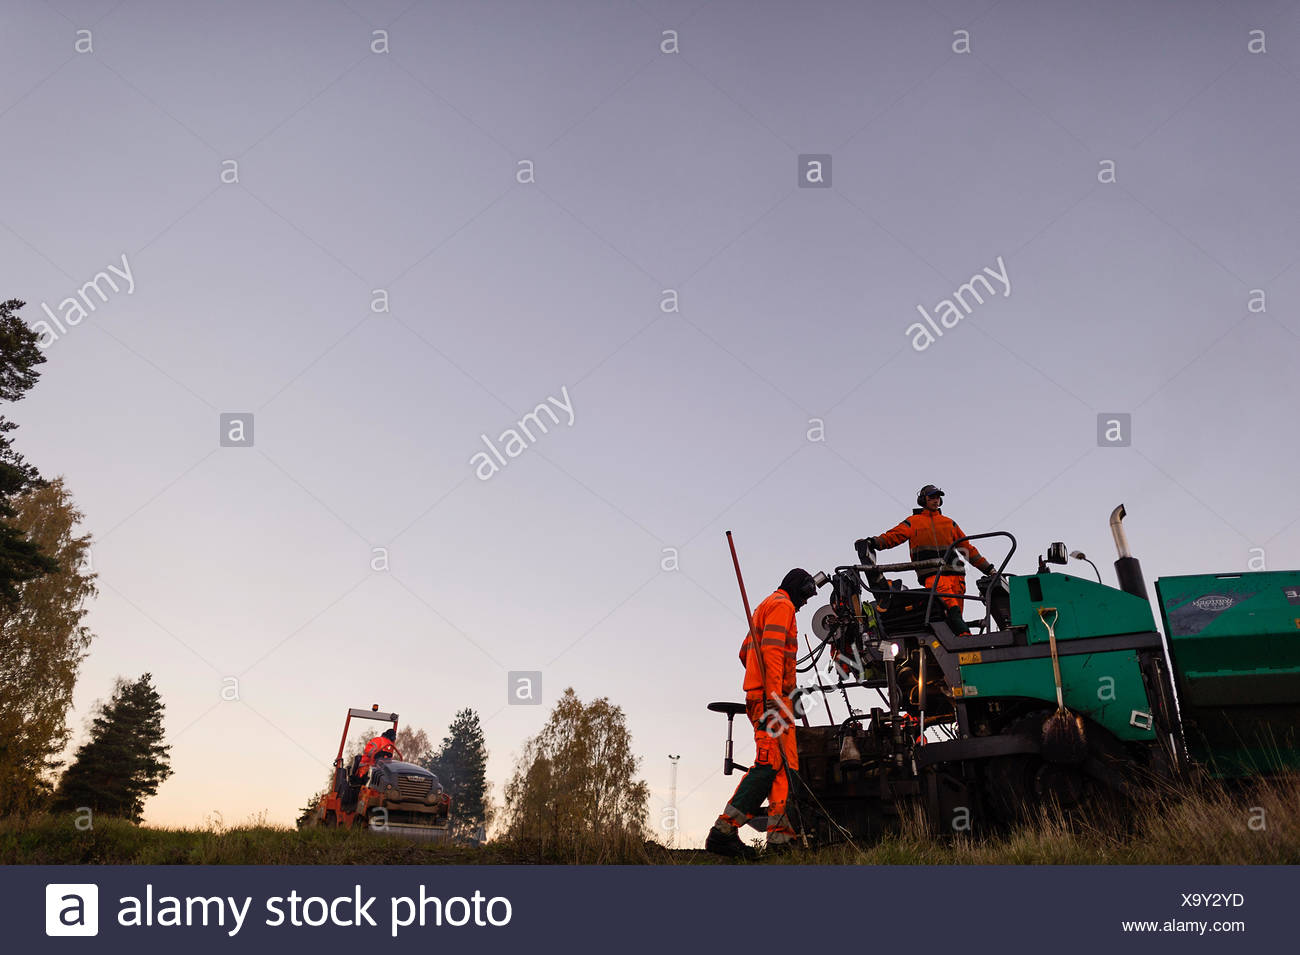 Sweden, Narke, Two Manual workers repairing road - Stock Image